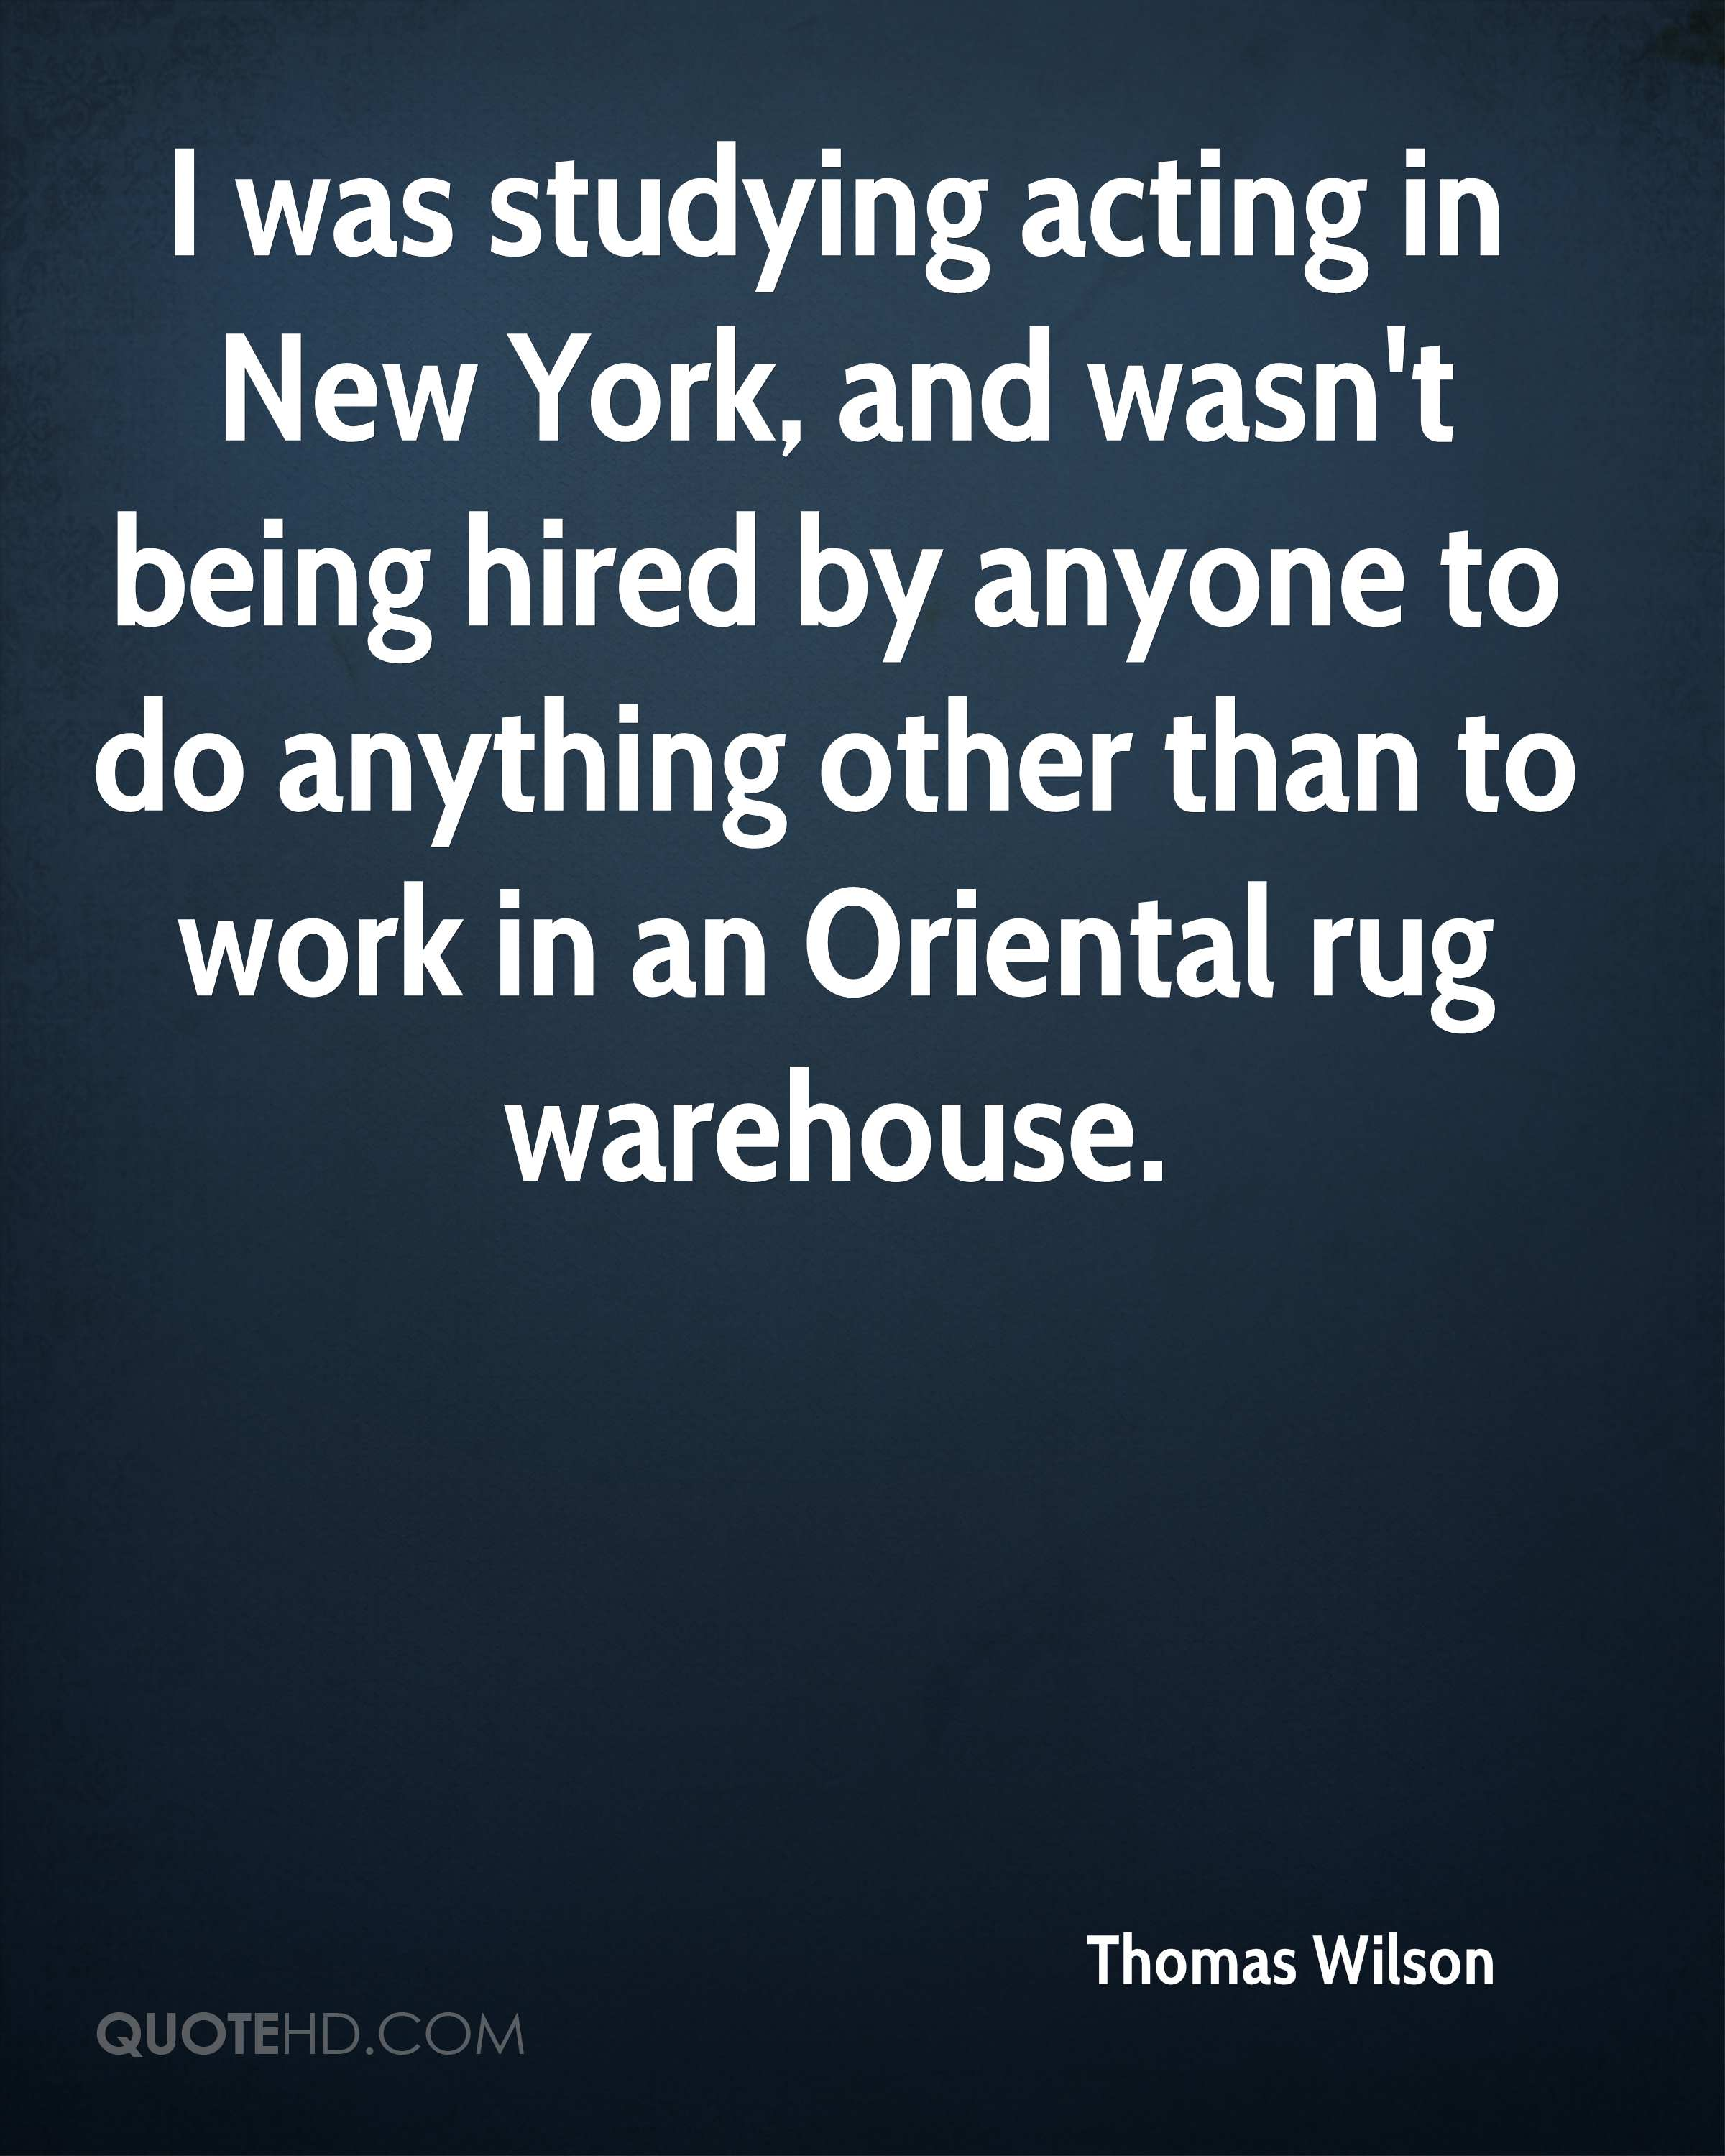 I was studying acting in New York, and wasn't being hired by anyone to do anything other than to work in an Oriental rug warehouse.